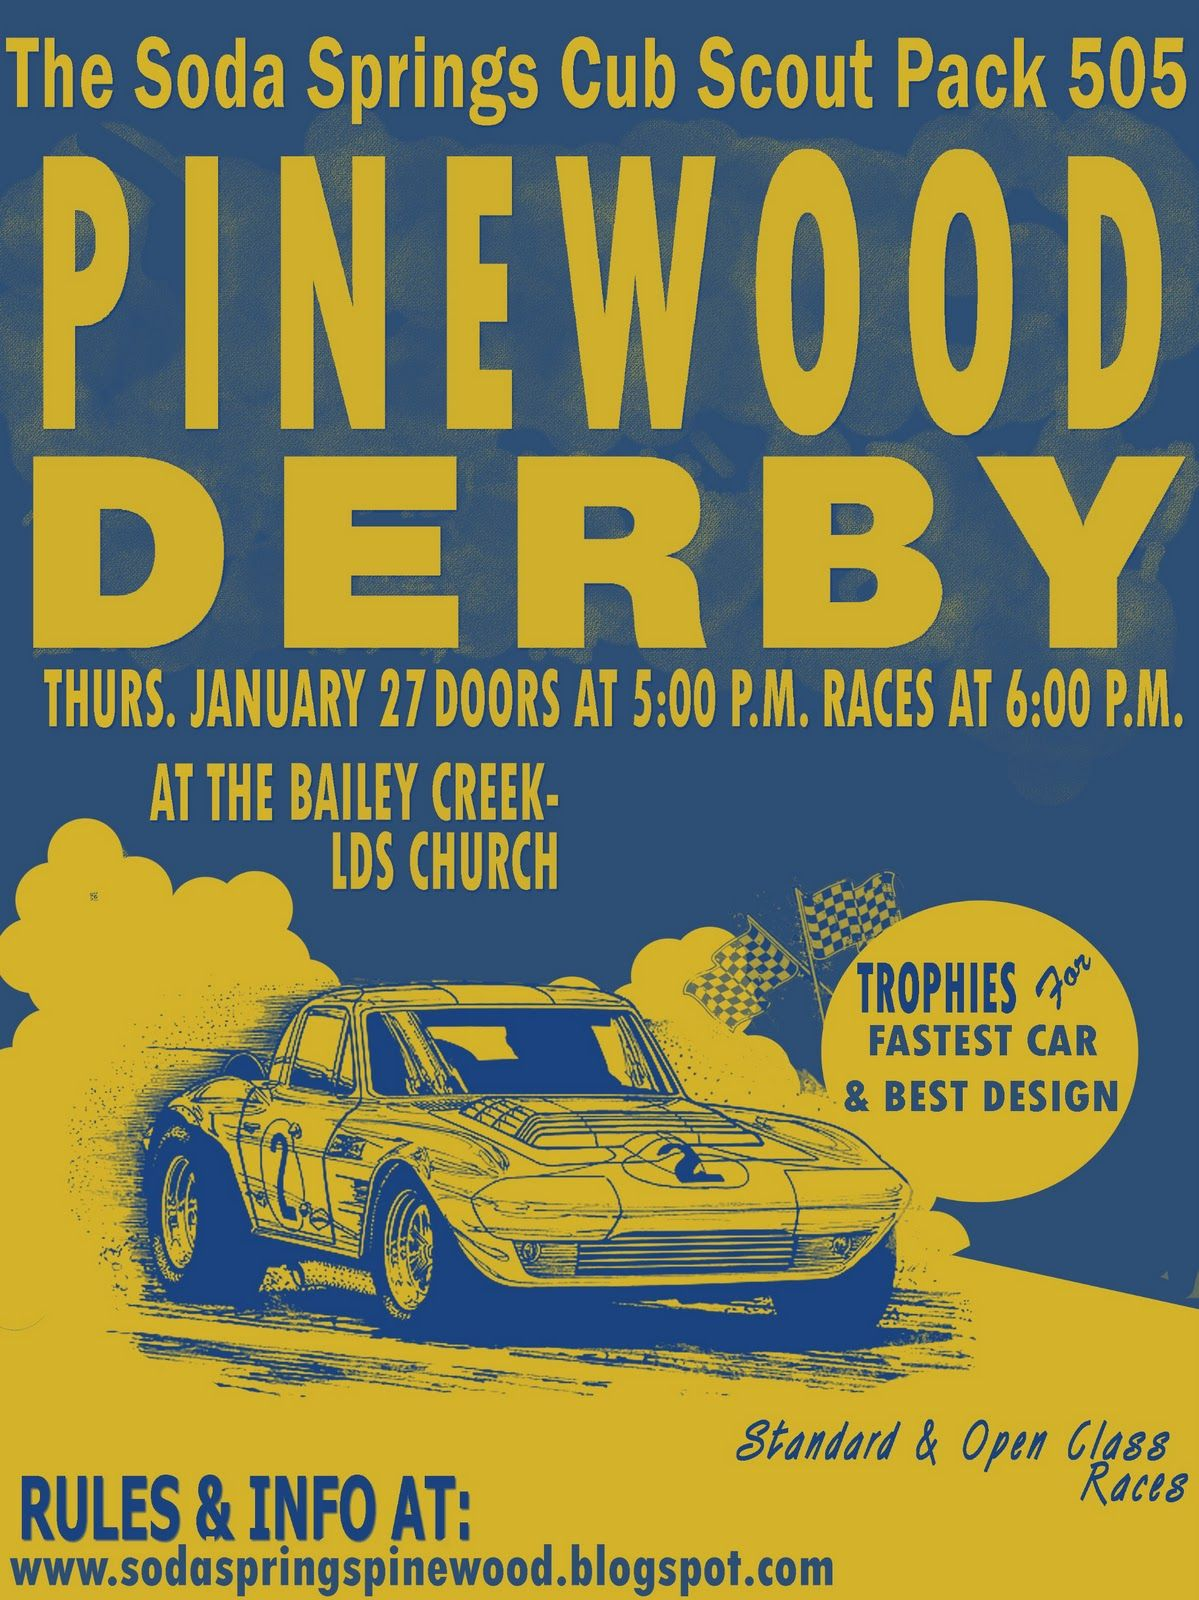 Copy of the flyer so anyone can get the basic info about for Boy scouts pinewood derby templates